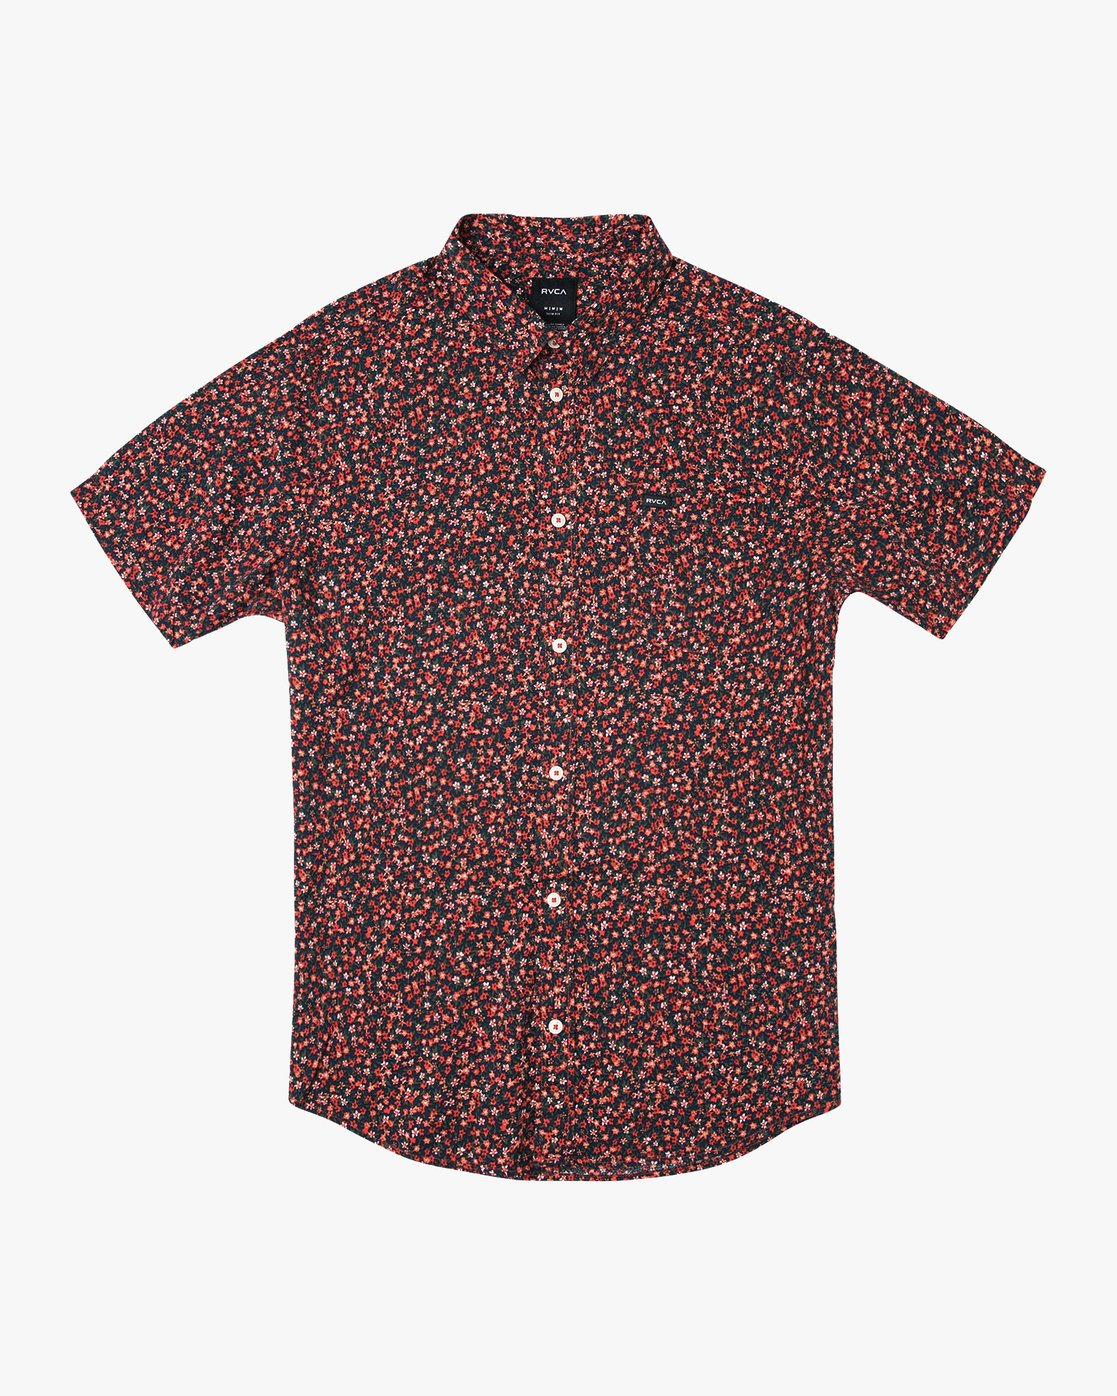 0 Revivalist Floral Button-Up Shirt Red M556URRF RVCA